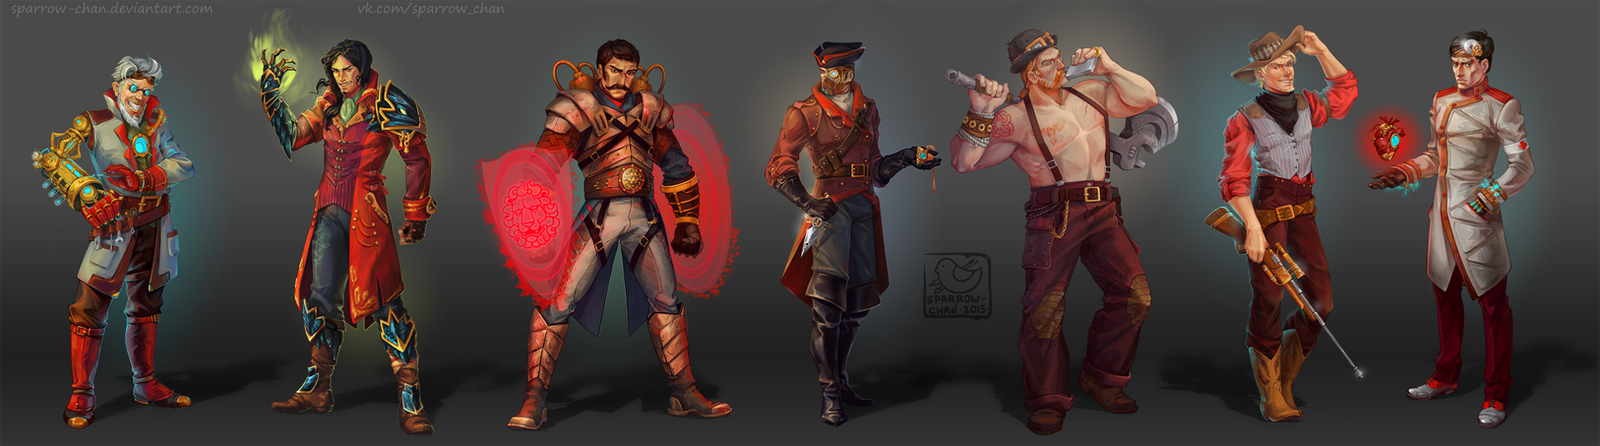 Steampunk characters by sparrow-chan